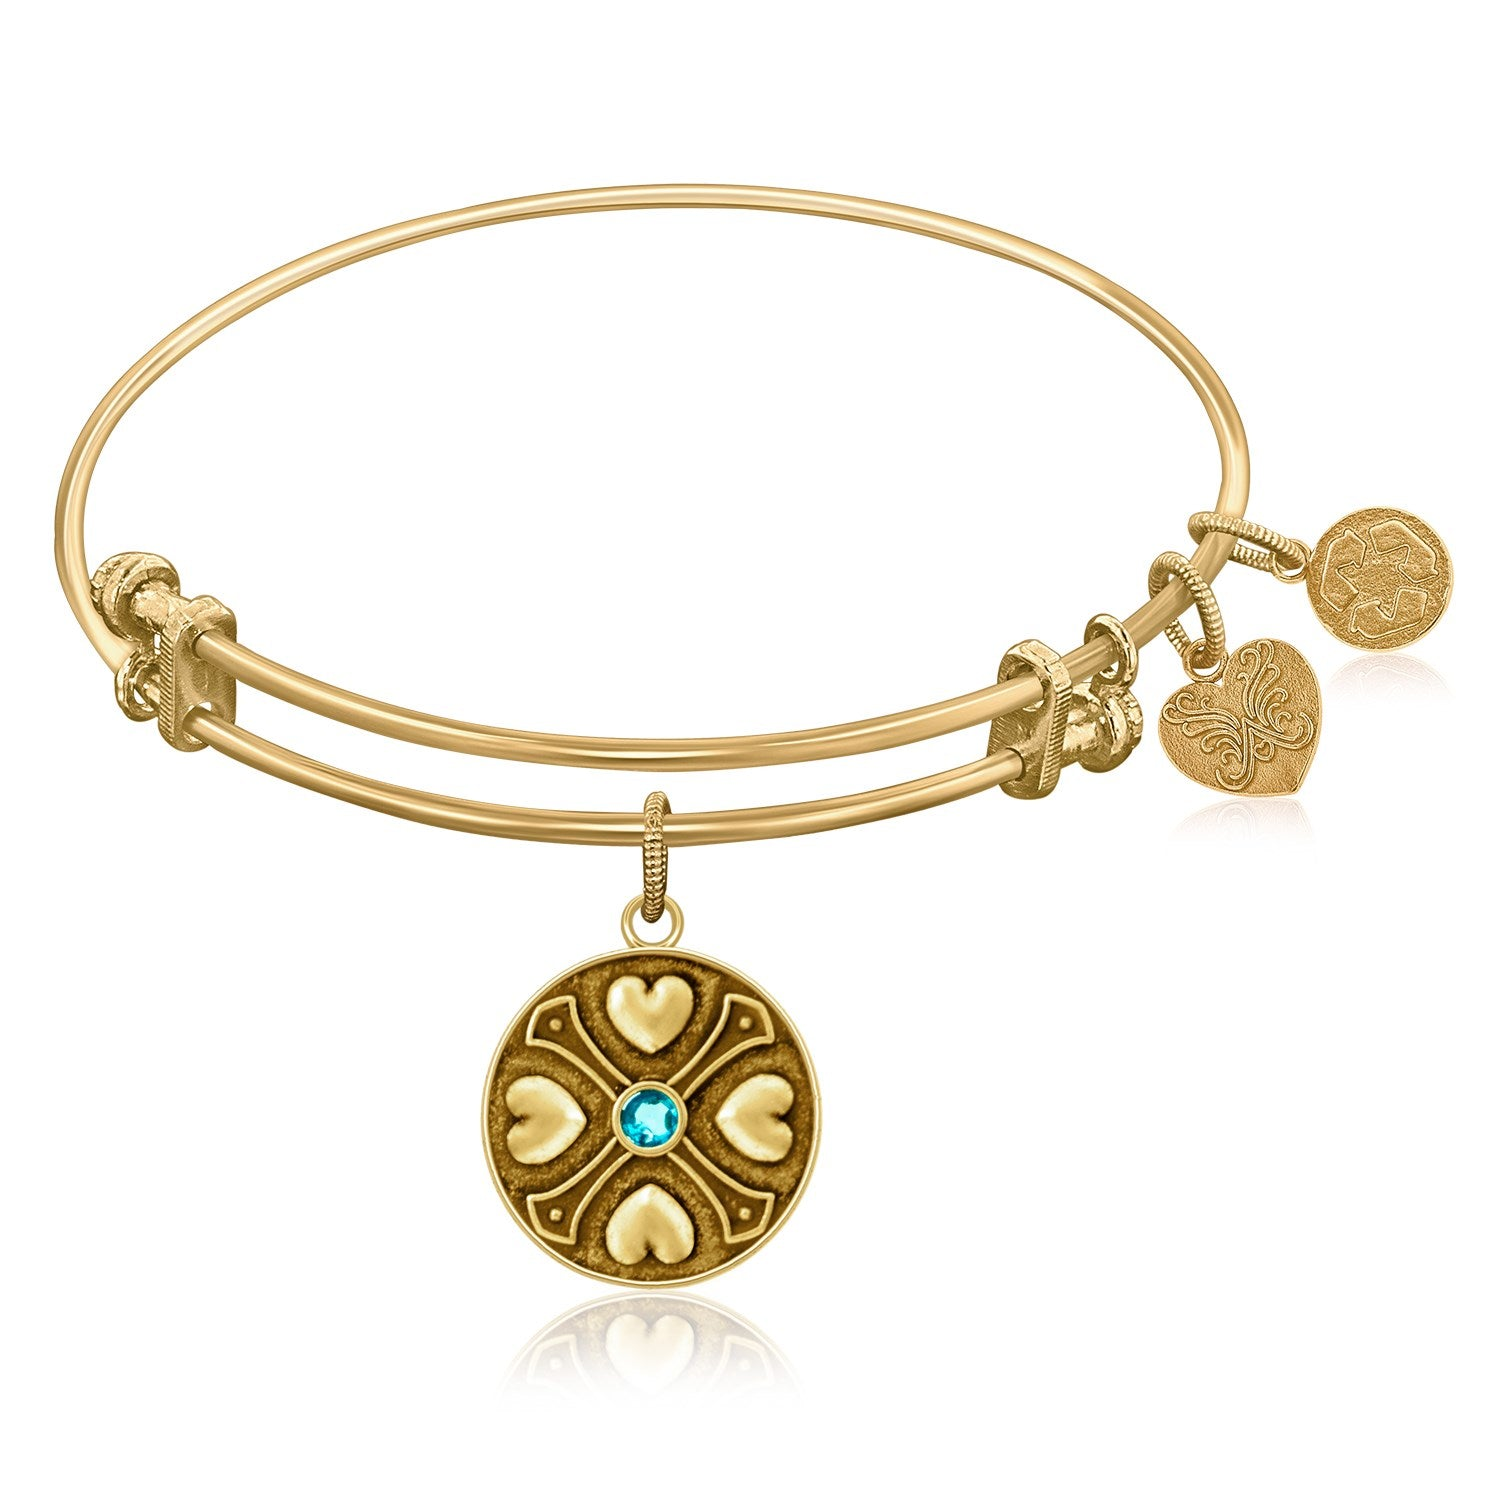 Expandable Bangle in Yellow Tone Brass with Blue Topaz December Symbol